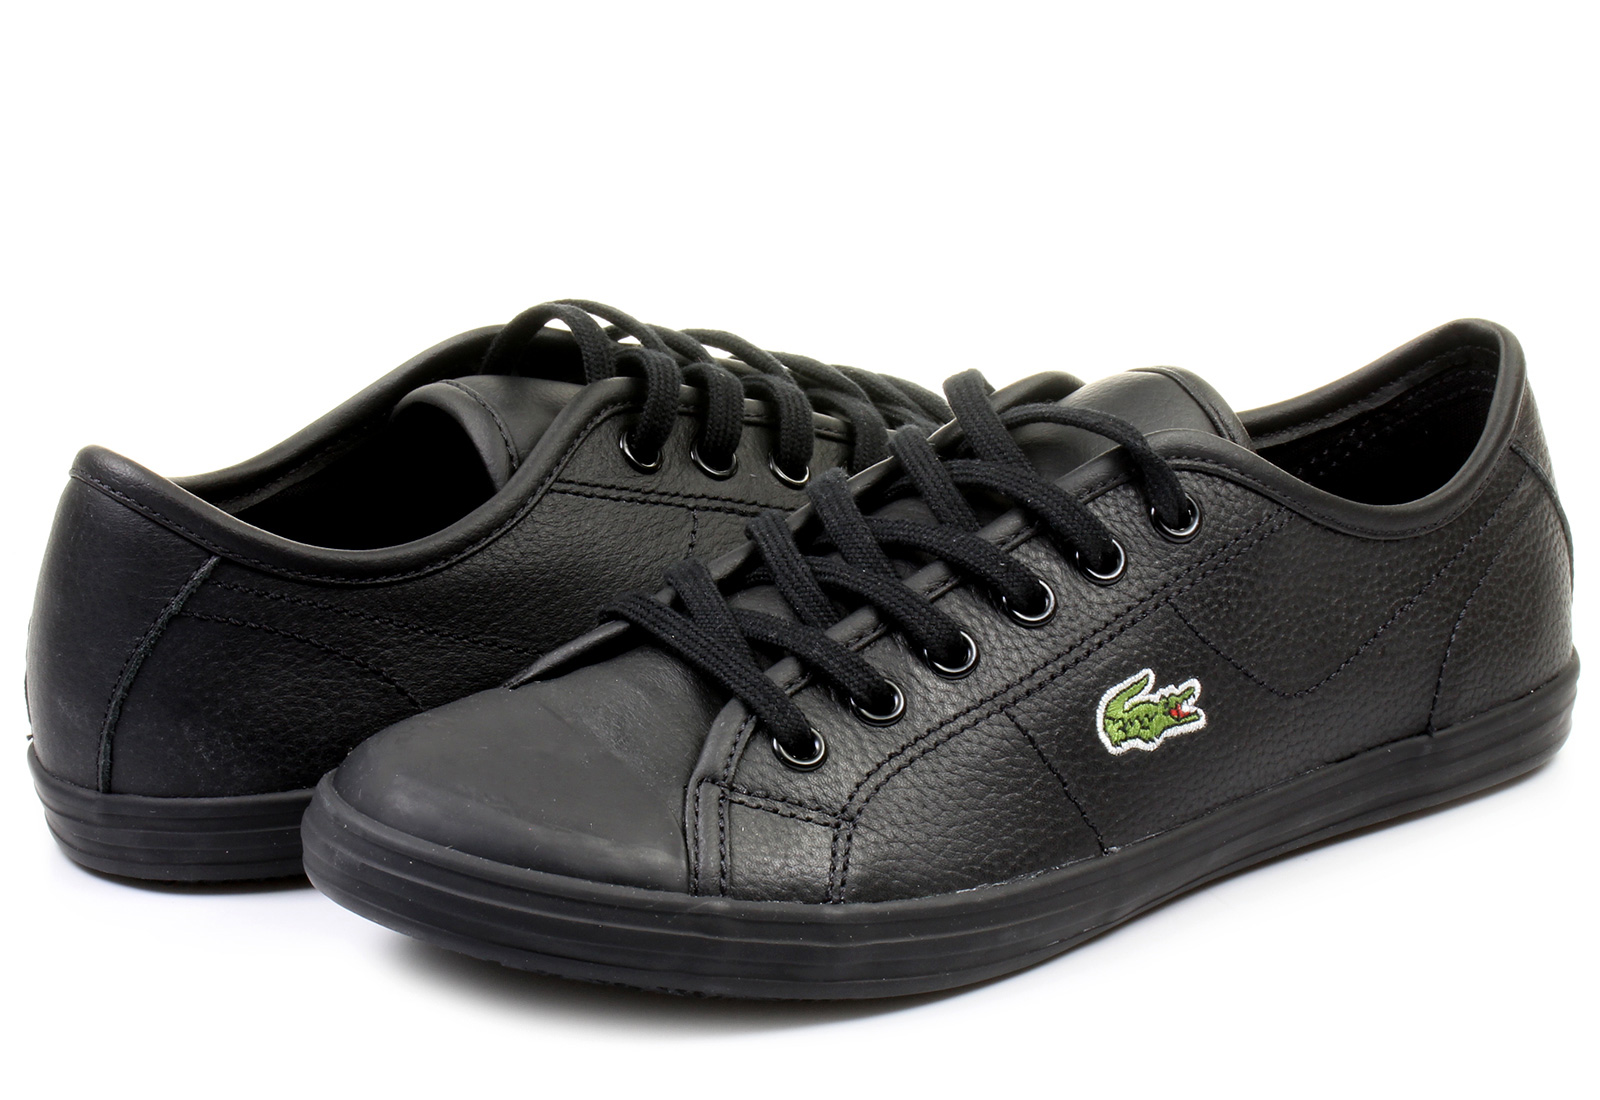 Lacoste Cipő - Ziane Sneaker - 144spw1152-02h - Office Shoes ... 248a5eb79c